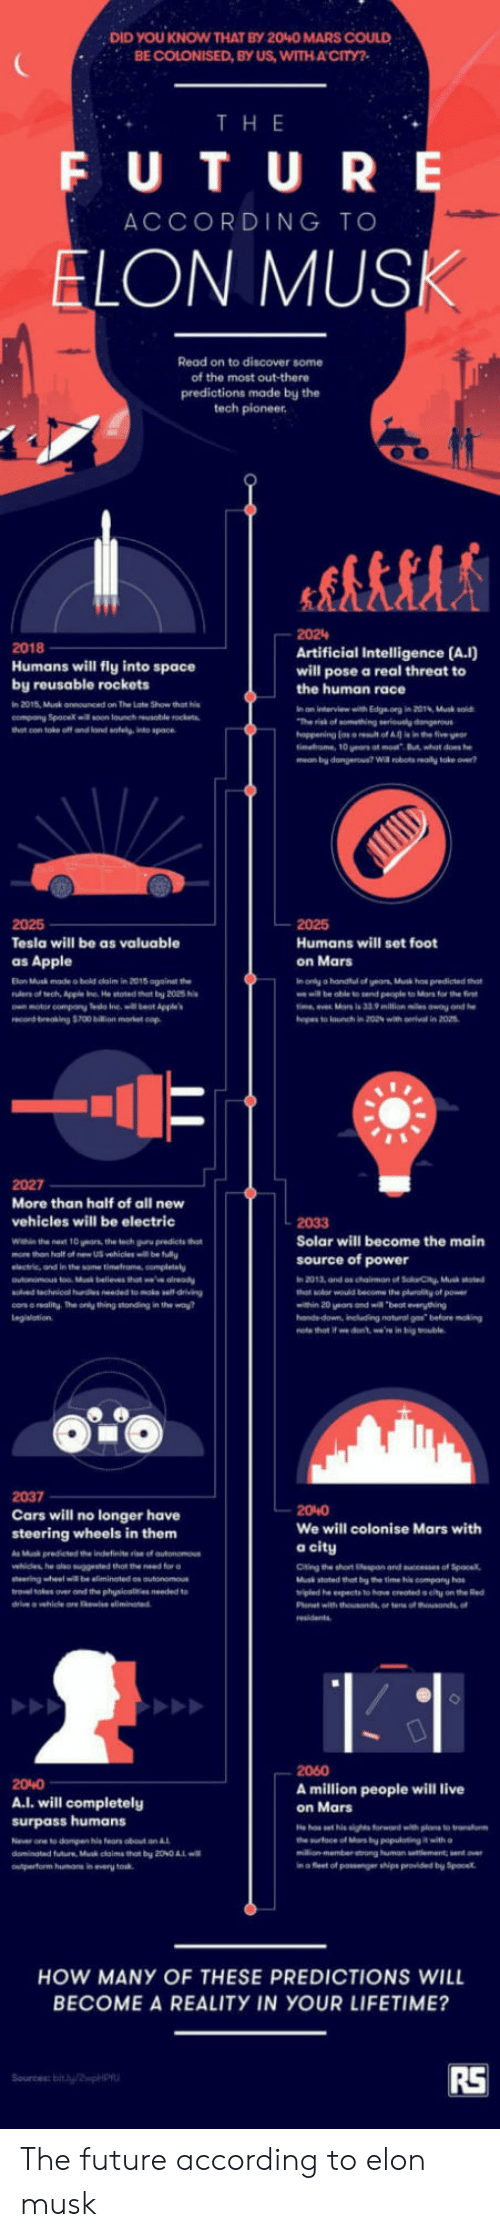 """Apple, Cars, and Driving: DID YOU KNOW THAT BY 2040 MARS COULD  BE COLONISED, BY US, WITHACITY?  TH E  F U T U RE  ACCORDING TO  LON MUS  Read on to discover some  of the most out-there  predictions made by the  tech pioneer  2024  2018  Humans will fly into space  by reusable rockets  in 2015, Musk announced on The Late Show that i  company Spacex soon lonch eusoble rockets  Artificial Intelligence (A.I)  will pose a real threat to  the human race  n on interview with Edge.org in 201%, Musk soid  2025  Tesla will be as valuable  as Apple  Elon Musk made o bold claim in 2015 againat the  own motor compony Teslo Inel et Appe  Humans will set foot  on Mars  in only a handitul of yeas, Ms hes predicted hat  me ill be oble to send people to Mars for the  2027  More than half of all new  vehicles will be electric  Within the nest 10 years, the tech guru predicts thot  more then half of new US vehicles will be fully  lectrie, and in the same timefrome, complesly  2033  Solar will become the main  source of power  solved lechnicol ies eeded to moke sell driving  cos e reality The only thing stonding in the way  hat solor would become te plurality of power  win 20 eas and will beat eveything  2037  Cars will no longer have  steering wheels in them  As predeted indefinite """"to of autono  We will colonise Mars with  a city  Citing the short iespan and sceesses of Sp  Musk stoted thet by the time is company has  ษ.led he """" ts to hos cremel citu ontheGod  she olso """"  sted thot ขาย  for @  20%0  A.l. will completely  surpass humans  None to dompen his fears obout an  2060  A million people will live  on Mars  o leet of ssnger shipe provided by Spo  HOW MANY OF THESE PREDICTIONS WILL  BECOME A REALITY IN YOUR LIFETIME?  RS The future according to elon musk"""